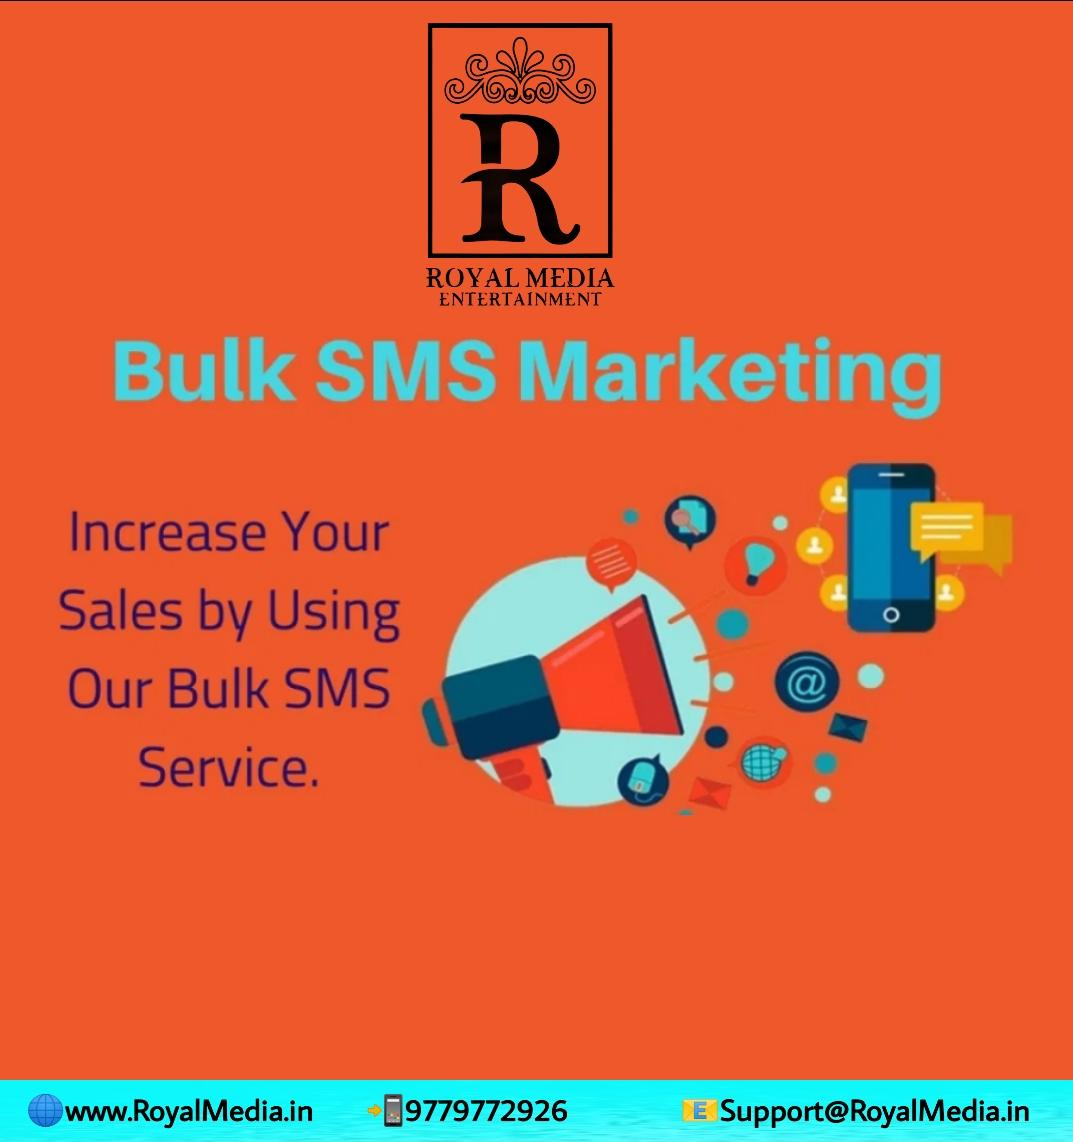 Our Bulk SMS Services can grow your business